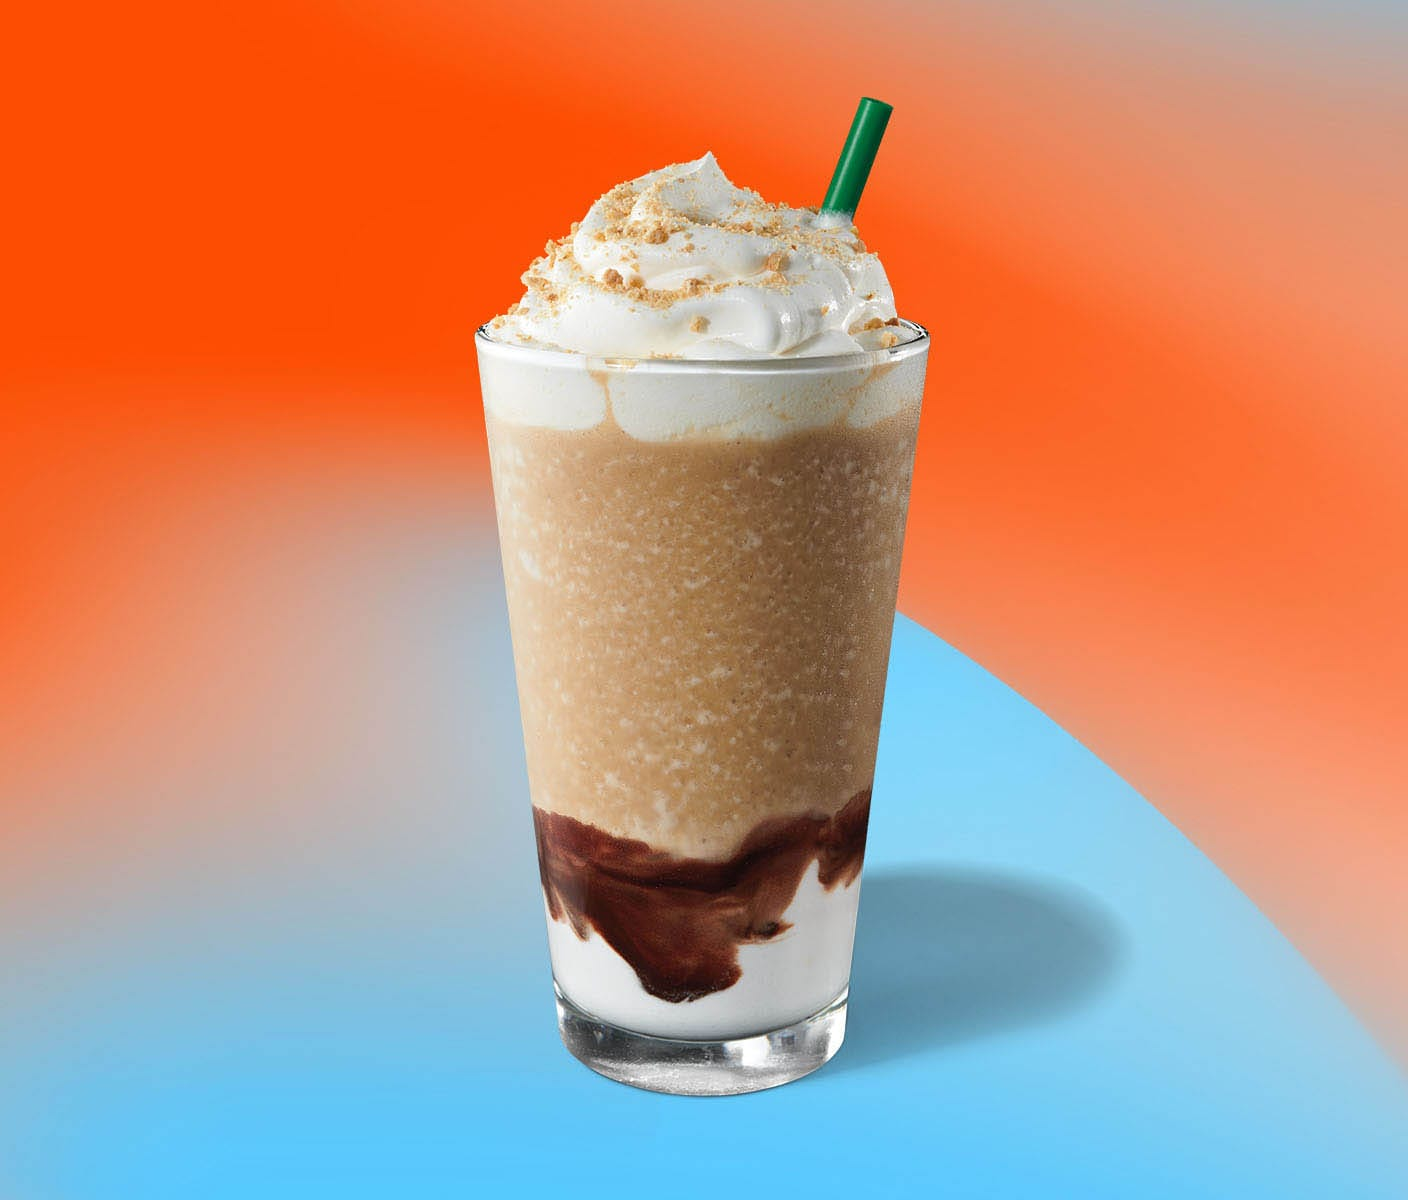 Creamy, chocolaty and layered blended beverage